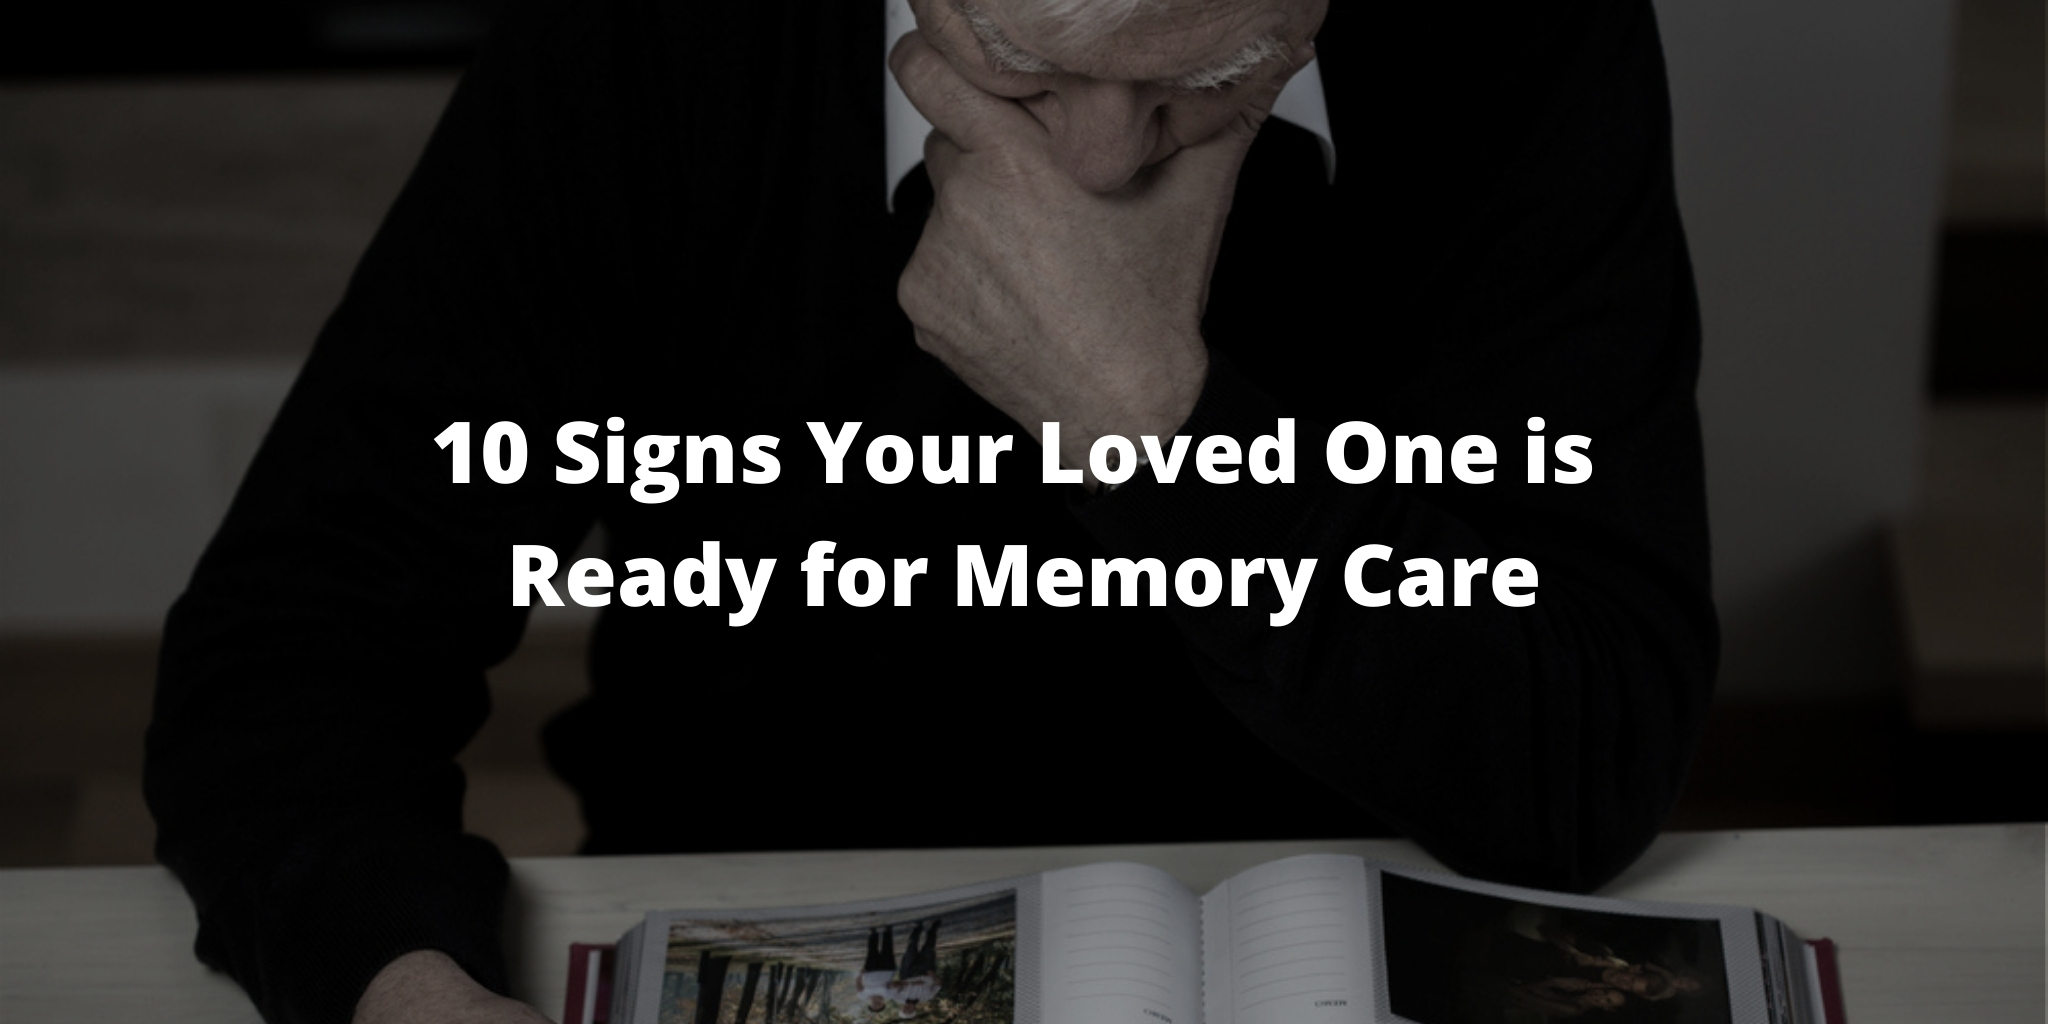 10 Signs Your Loved One is Ready for Memory Care